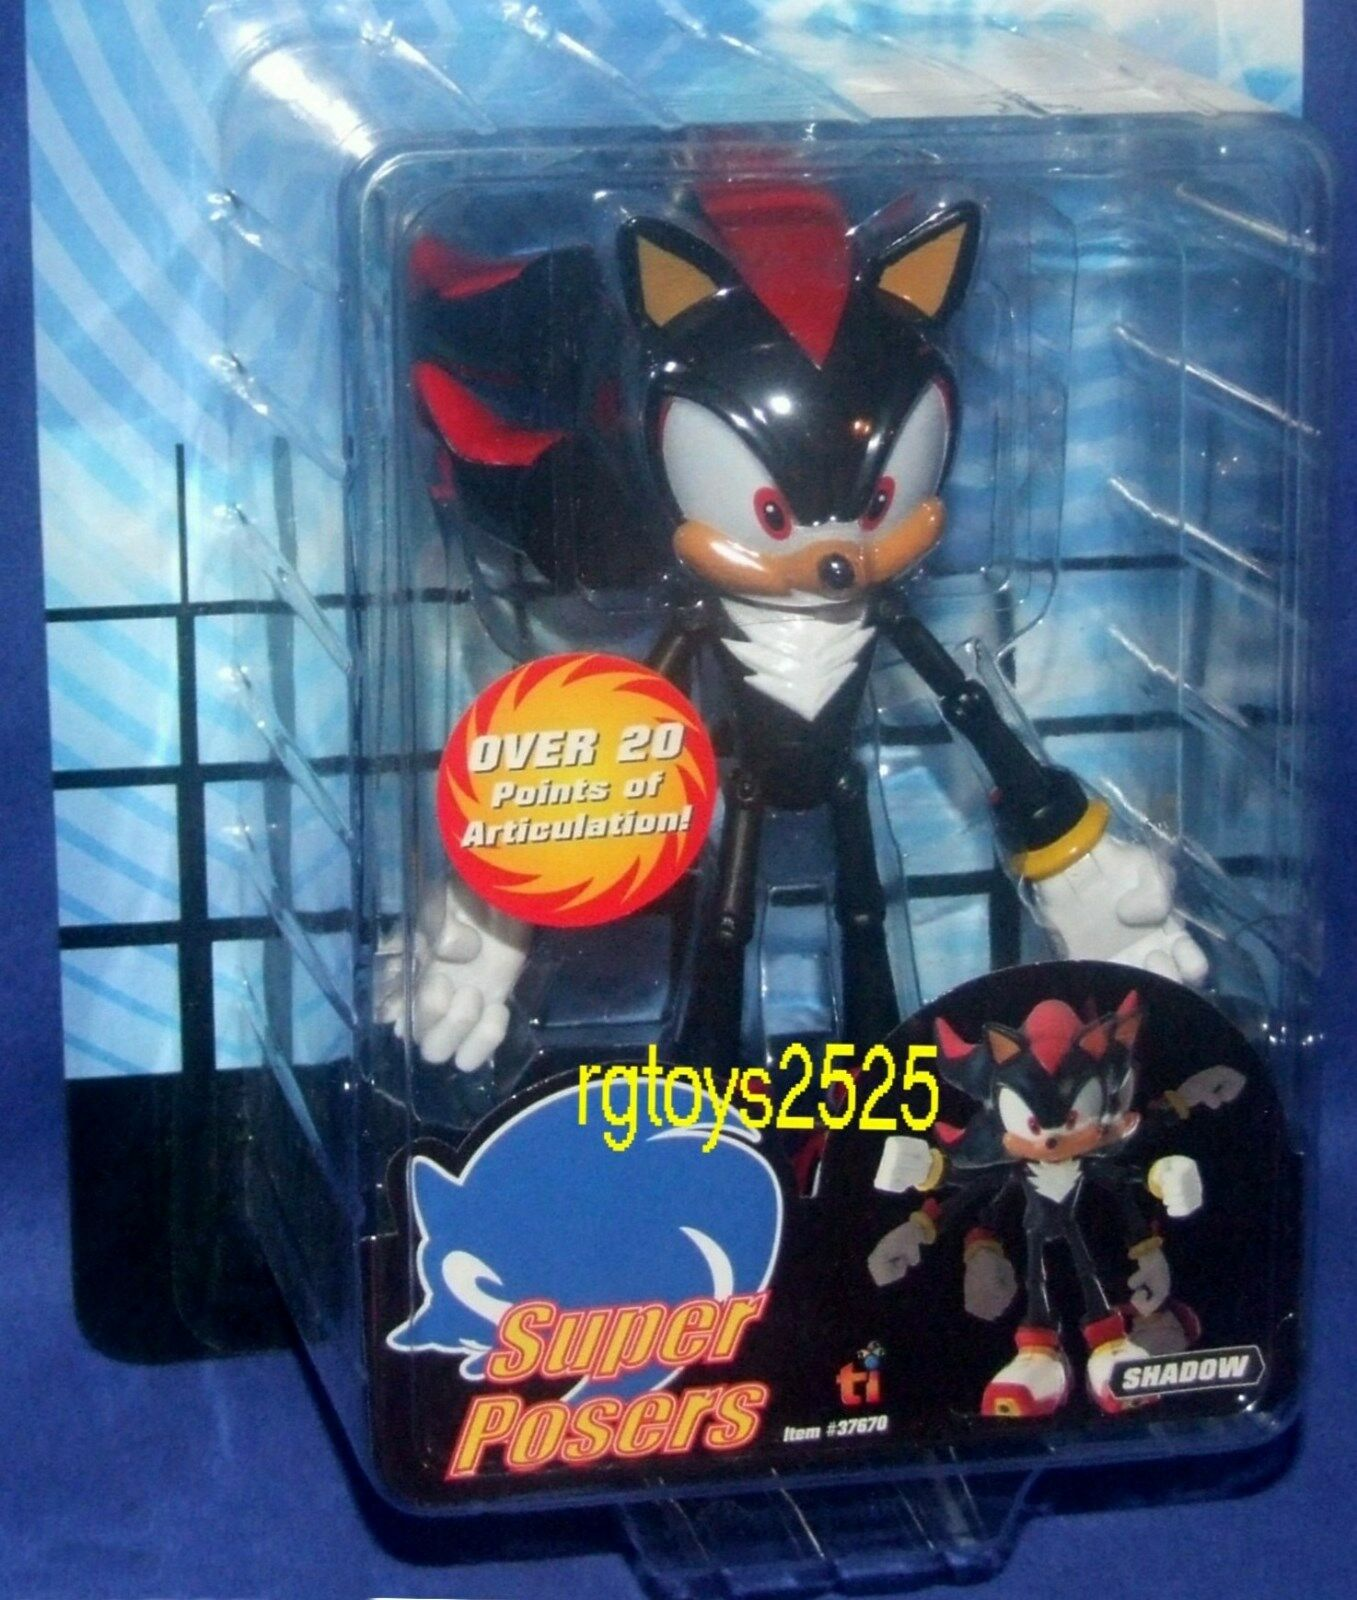 Sonic X Shadow 7 Sonic The Hedgehog Super Posers New Factory Sealed Toy Island For Sale Online